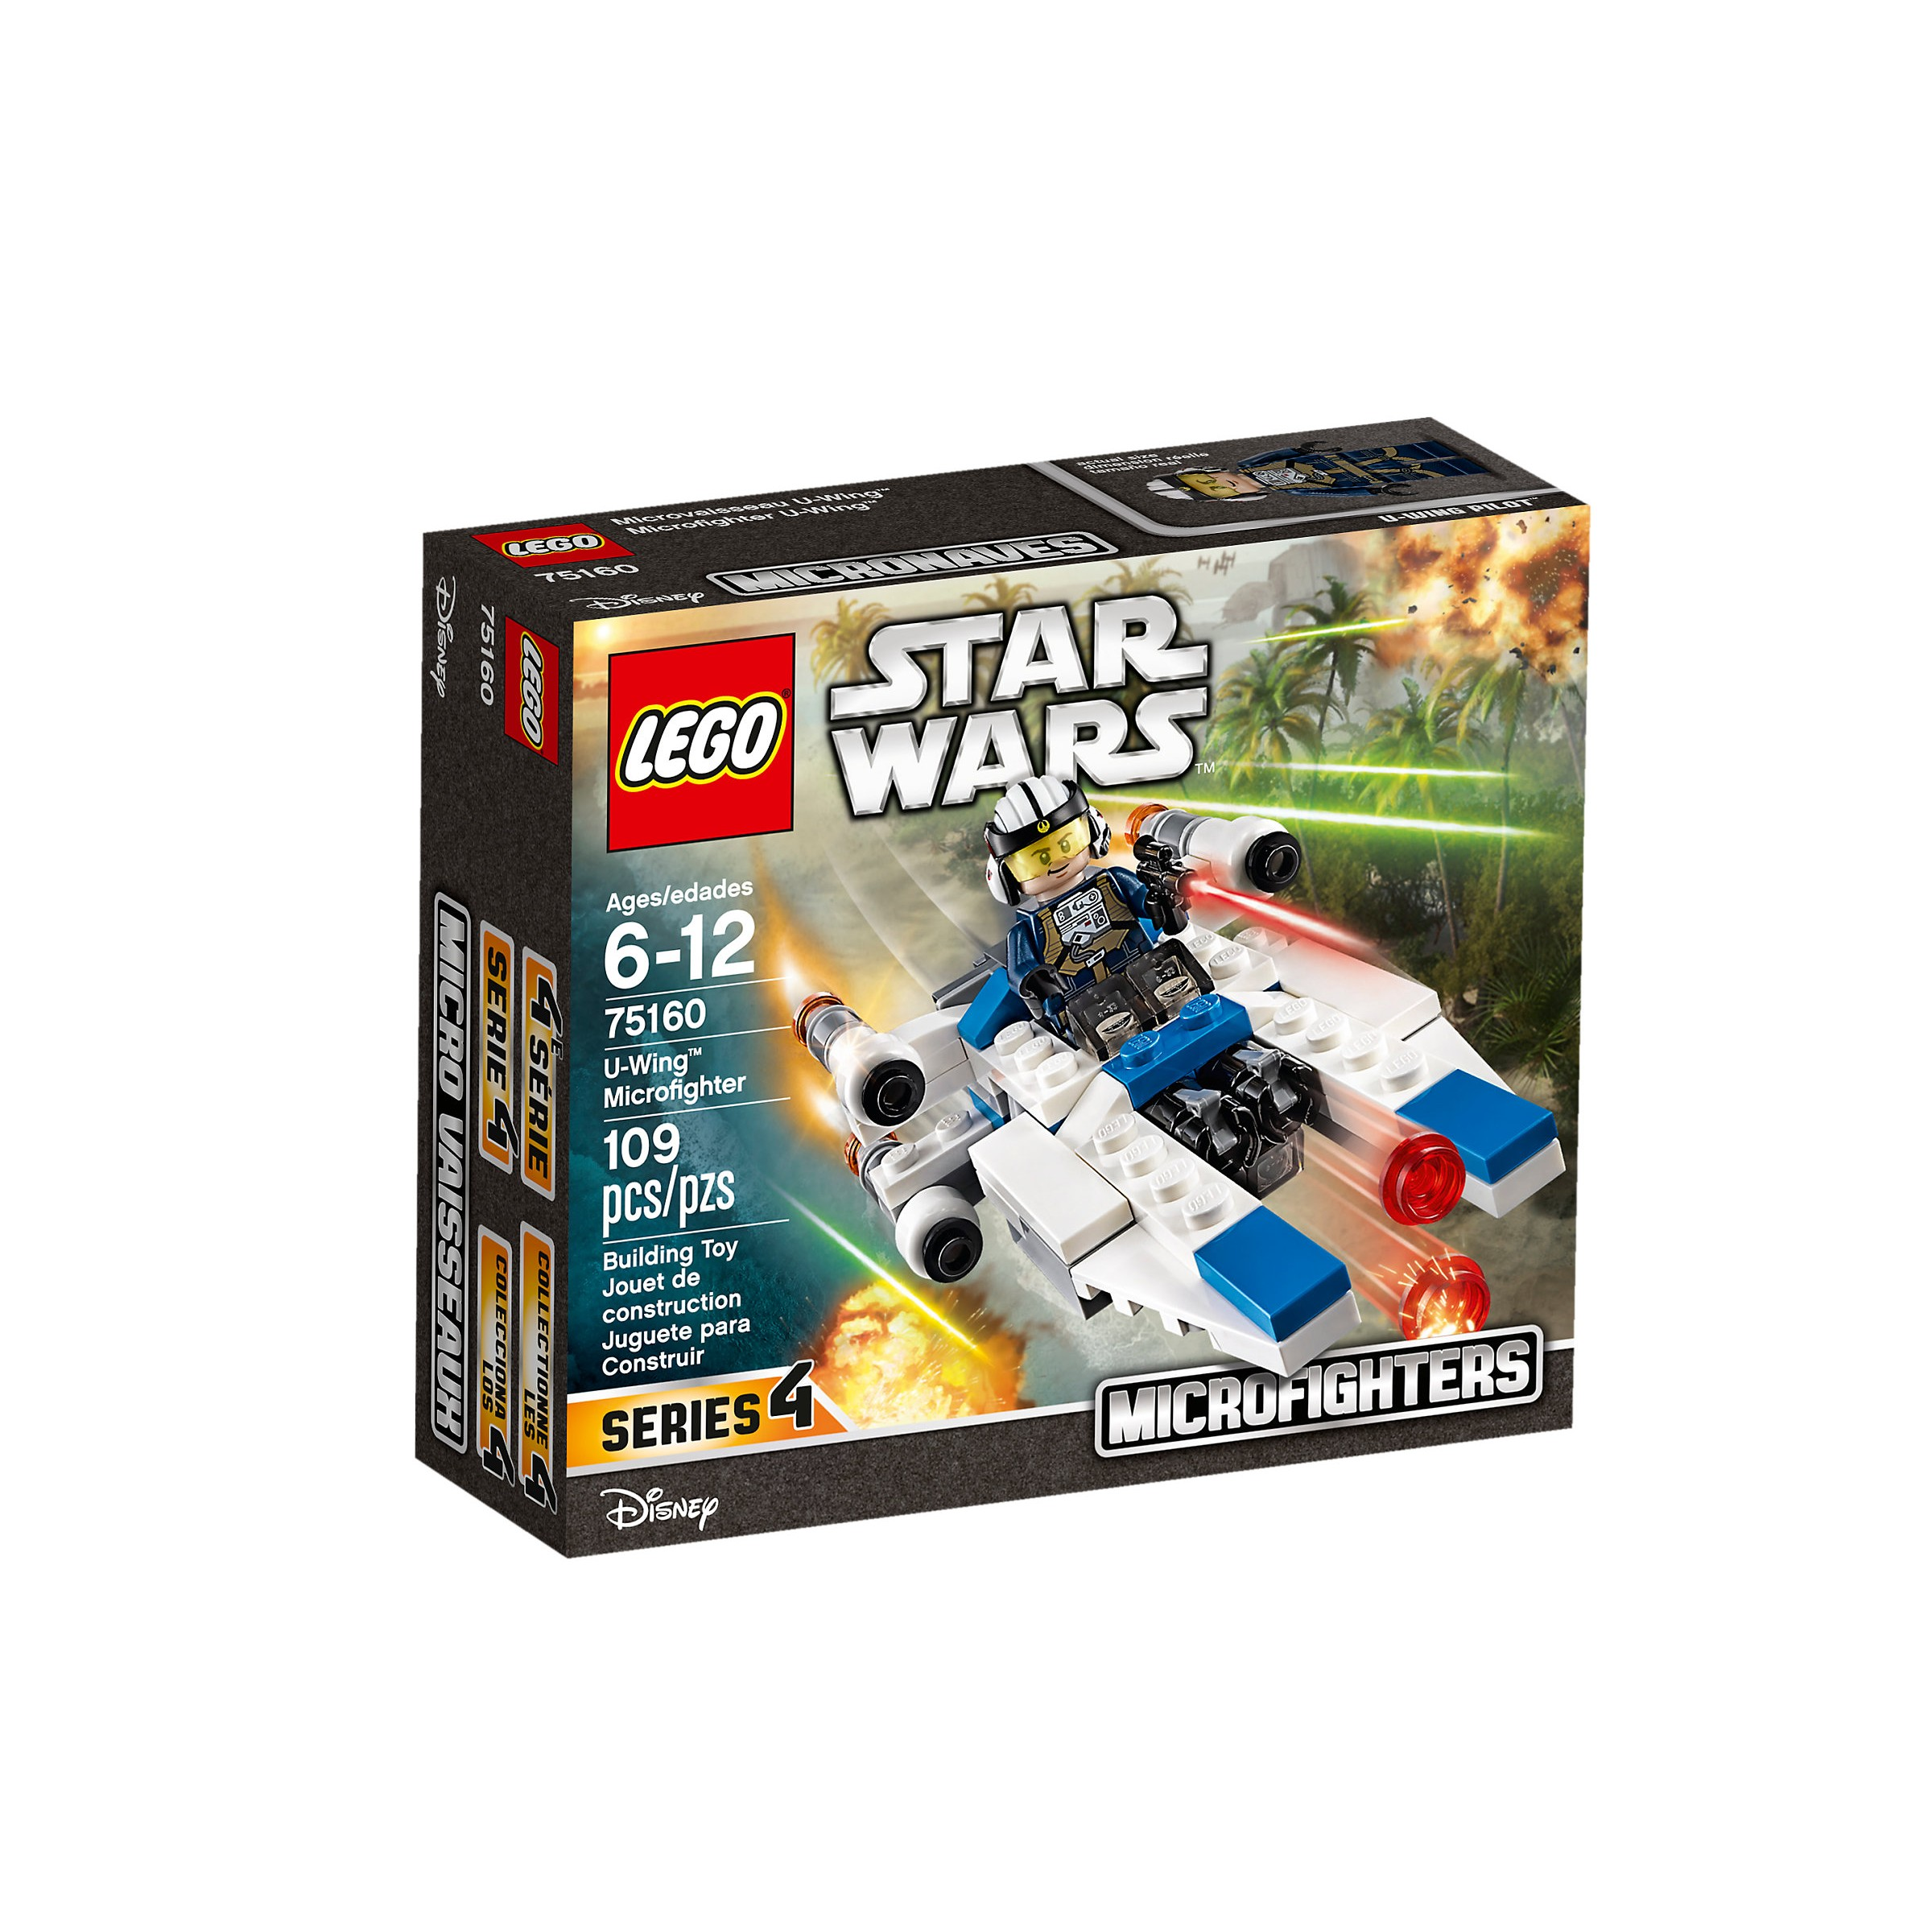 traxxas 1 8 scale with Lego 75160 Star Wars U Wing Microfighter on modellbau Profi as well Funko Teen Titans Go Raven Pink Pop Vinyl Figure together with Watch together with C1355 moreover Lego 75160 Star Wars U Wing Microfighter.